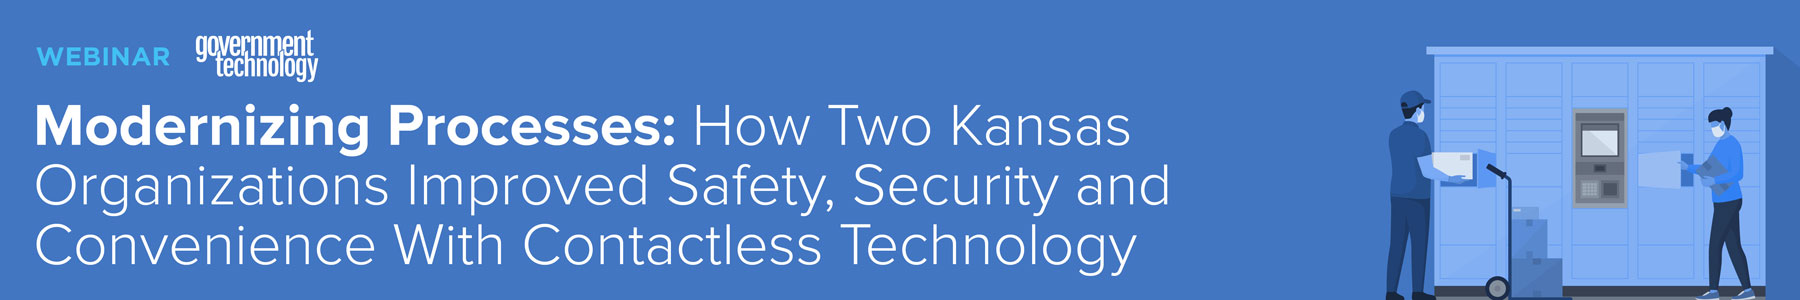 Modernizing Processes: How Two Kansas Organizations Improved Safety, Security and Convenience with Contactless Technology